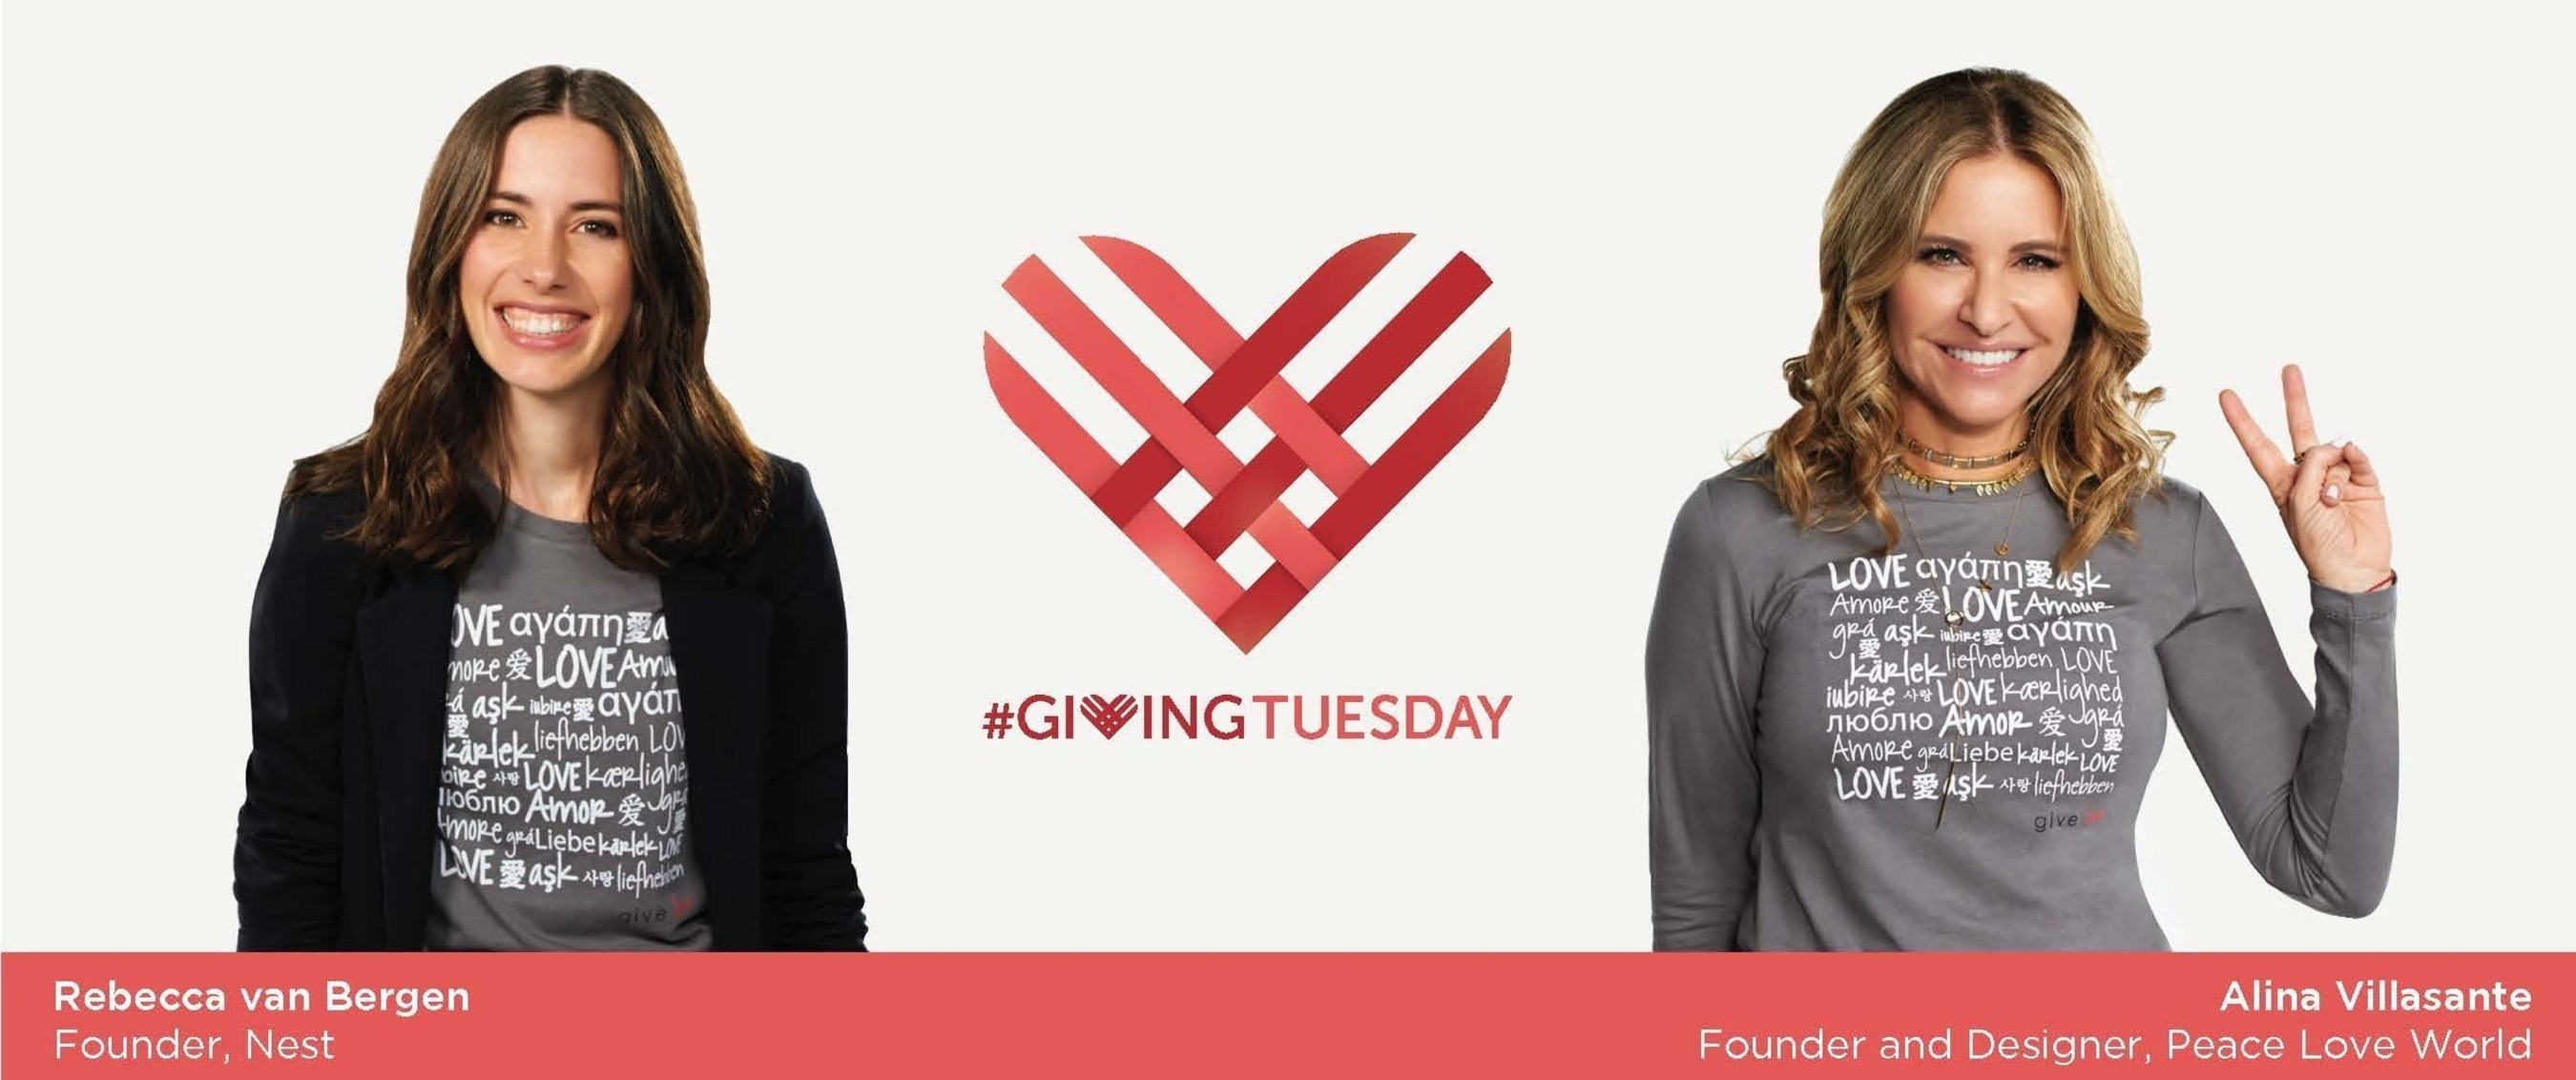 Rebecca van Bergen, founder and executive director of Nest, and Alina Villasante, designer and founder of Peace Love World, for QVC's #GivingTuesday